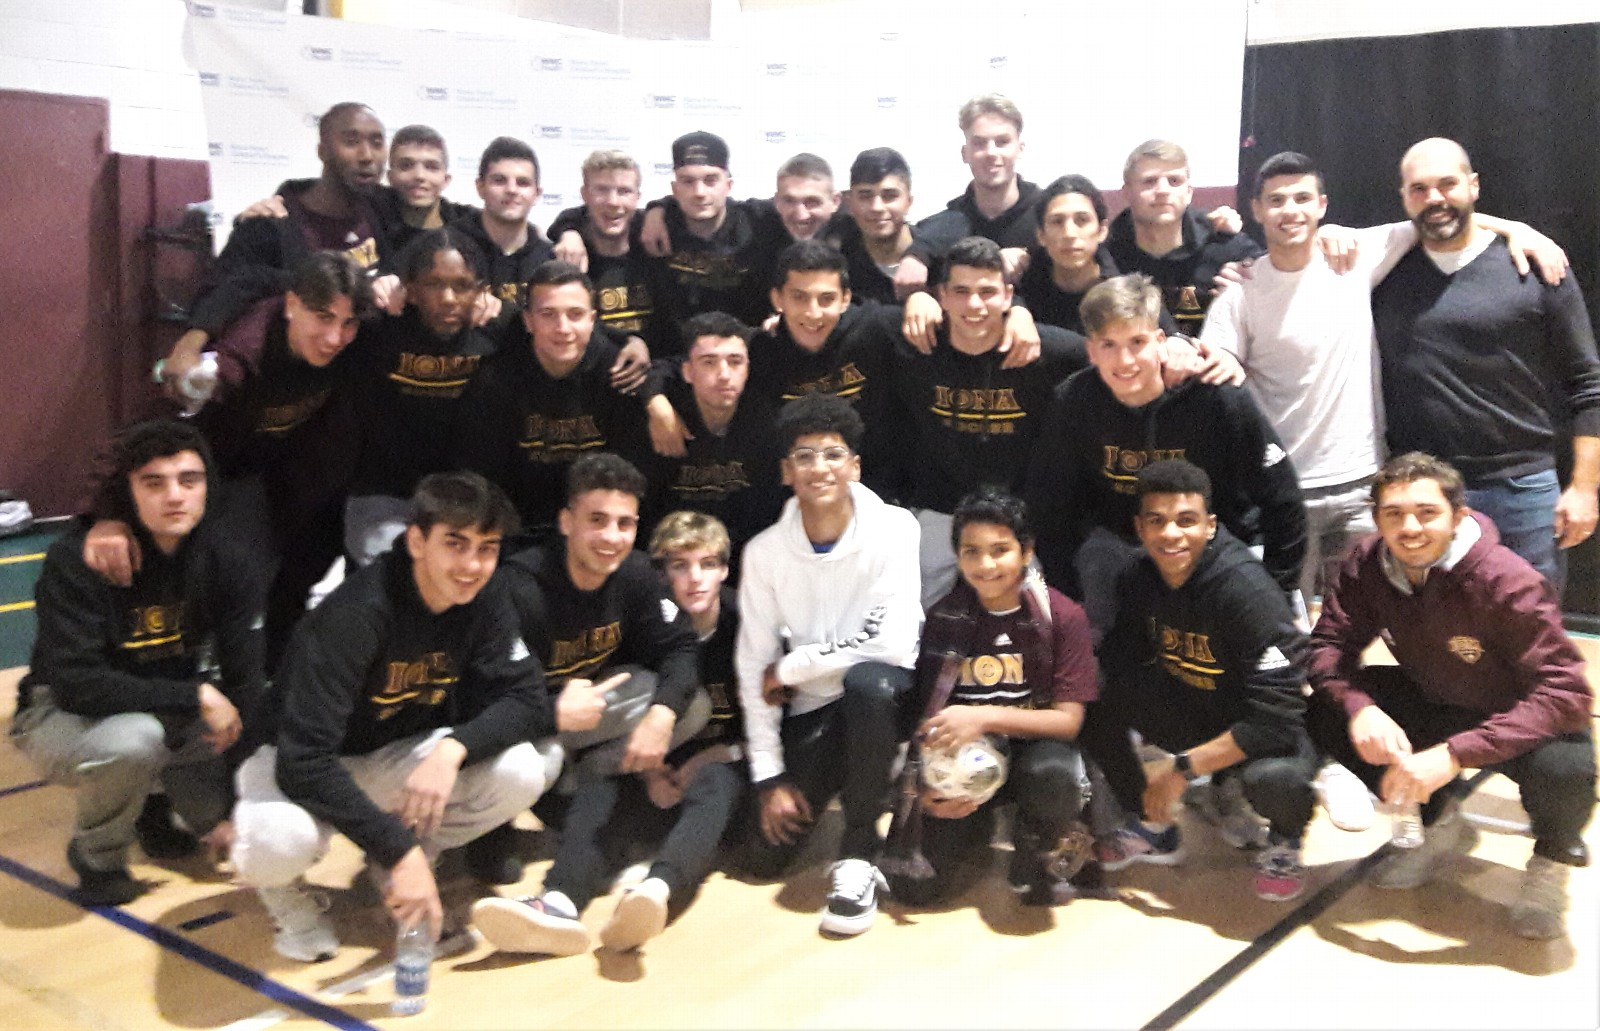 Kiran is pictured with the Iona College soccer team in 2019.